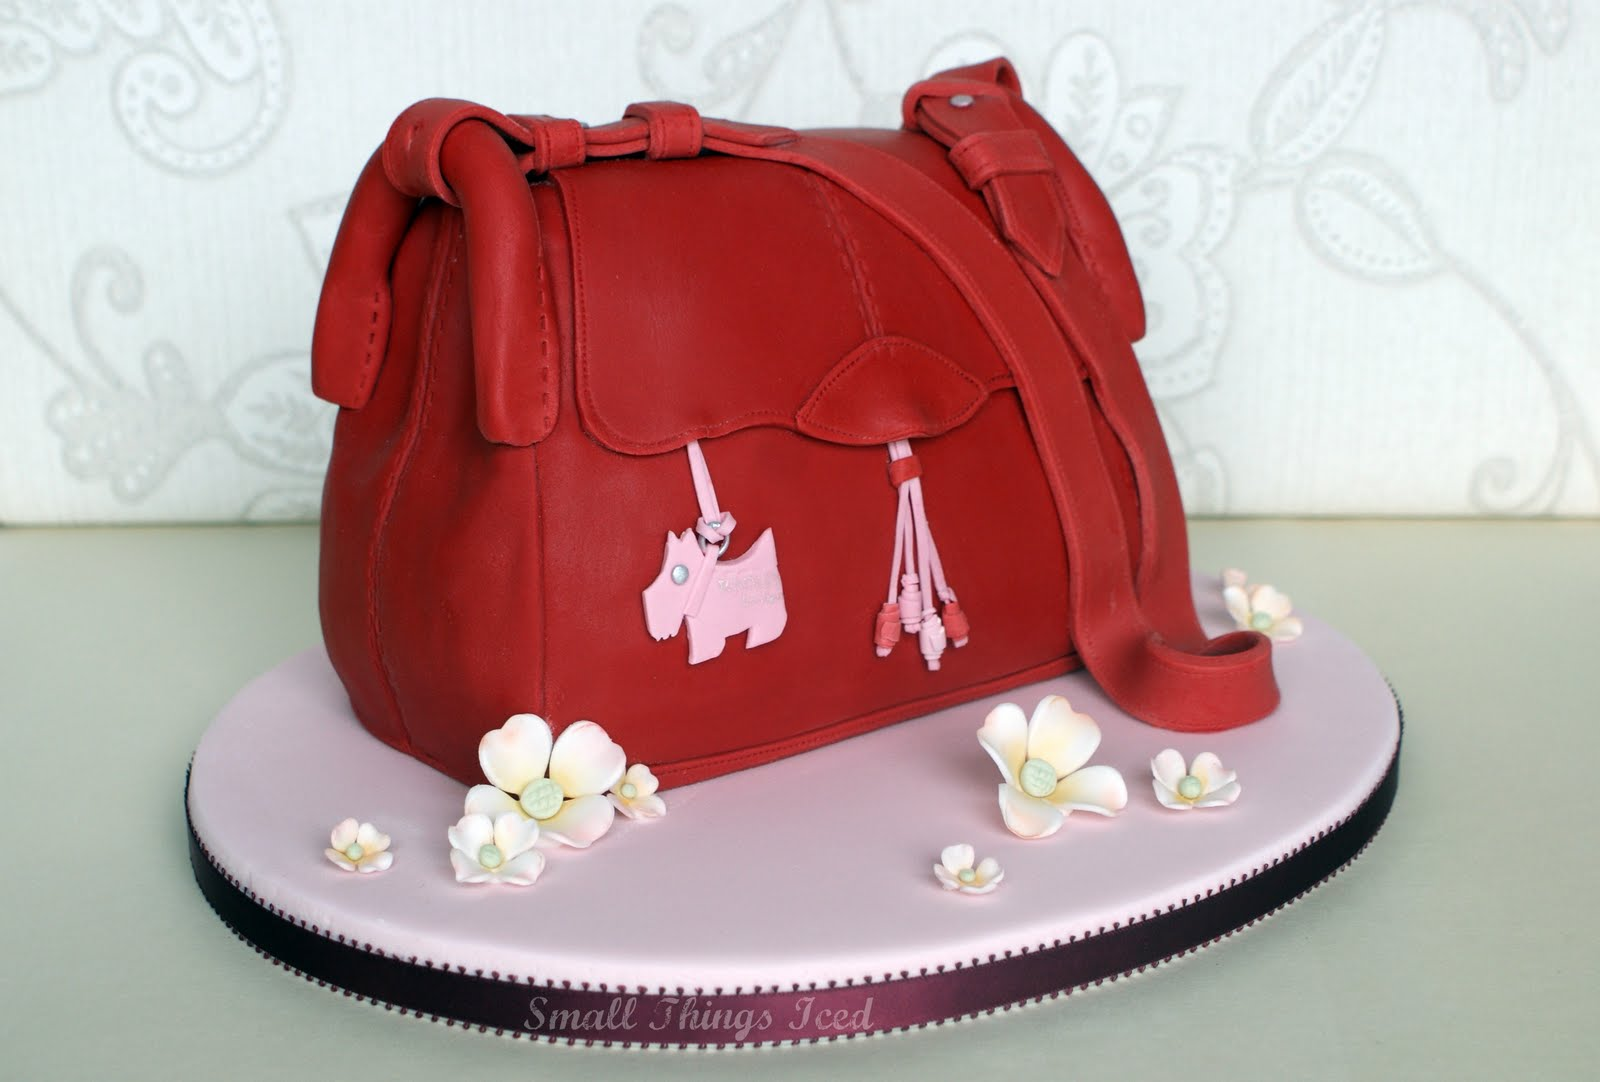 Small Things Iced Radley Handbag Cake